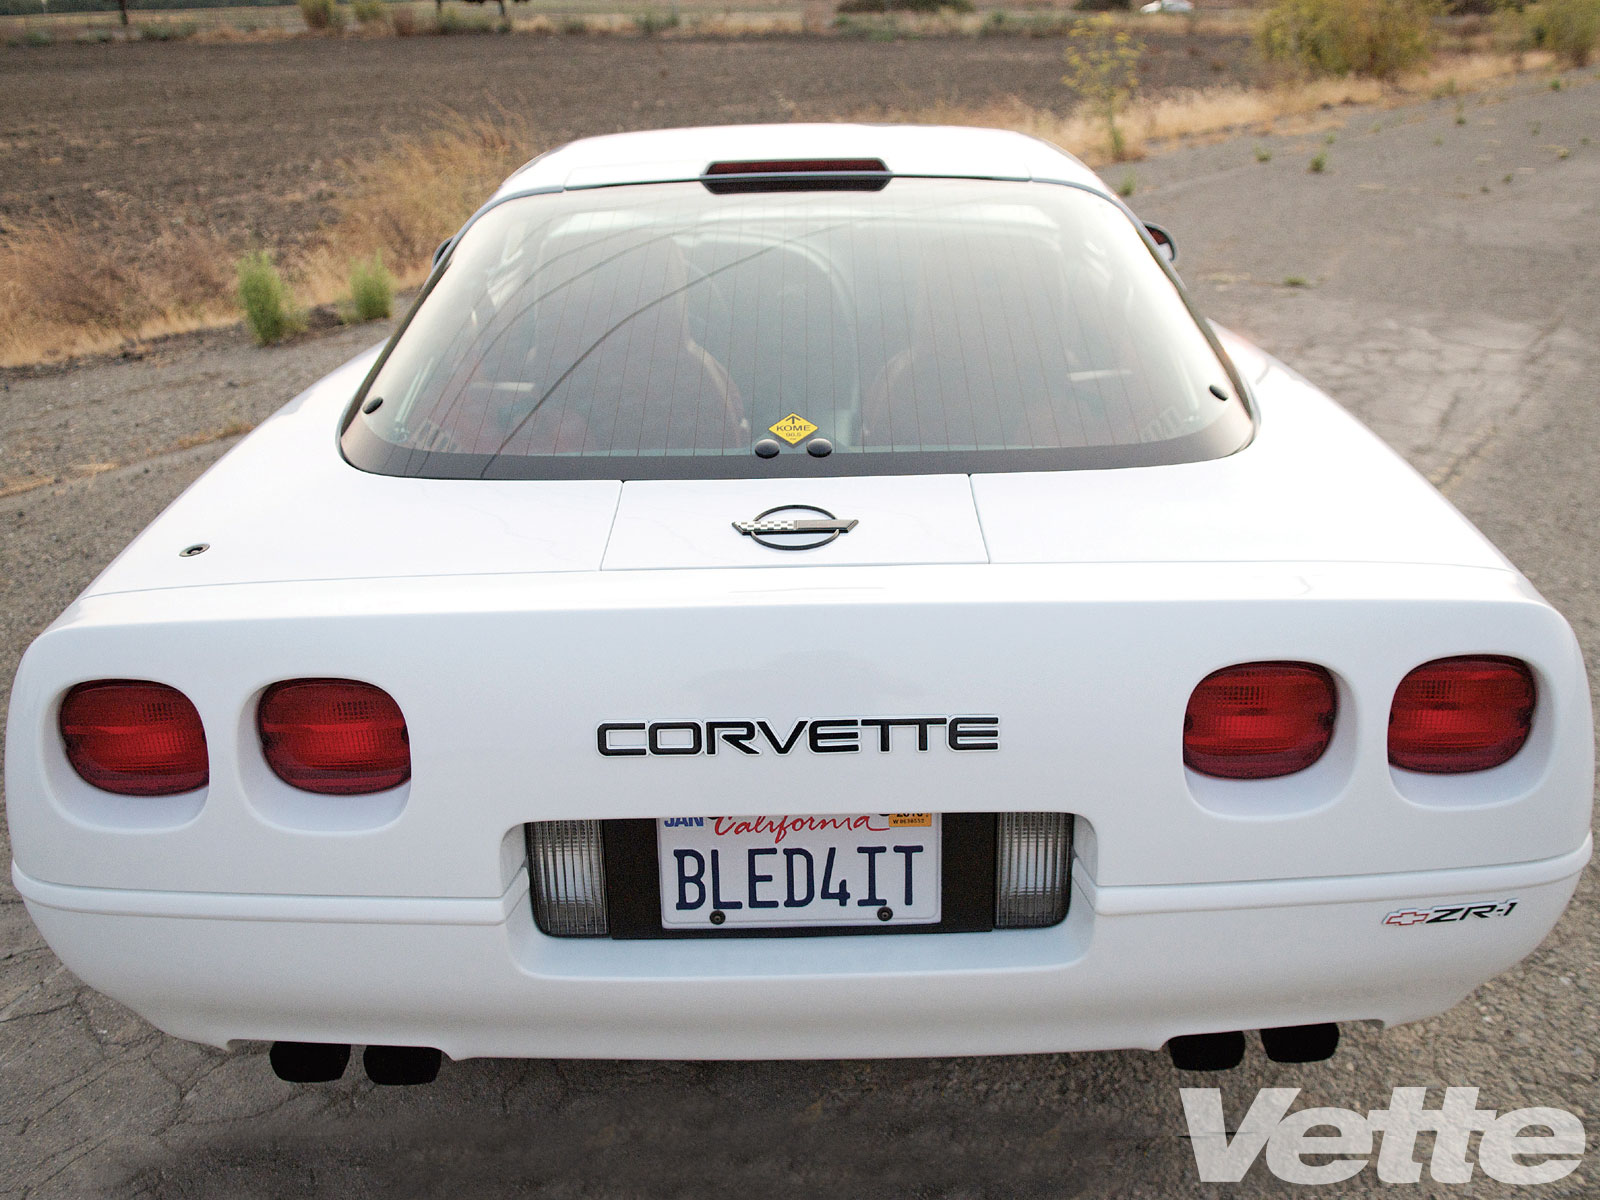 Vemp_1002_02_o C4_corvette_zr_1 Rear